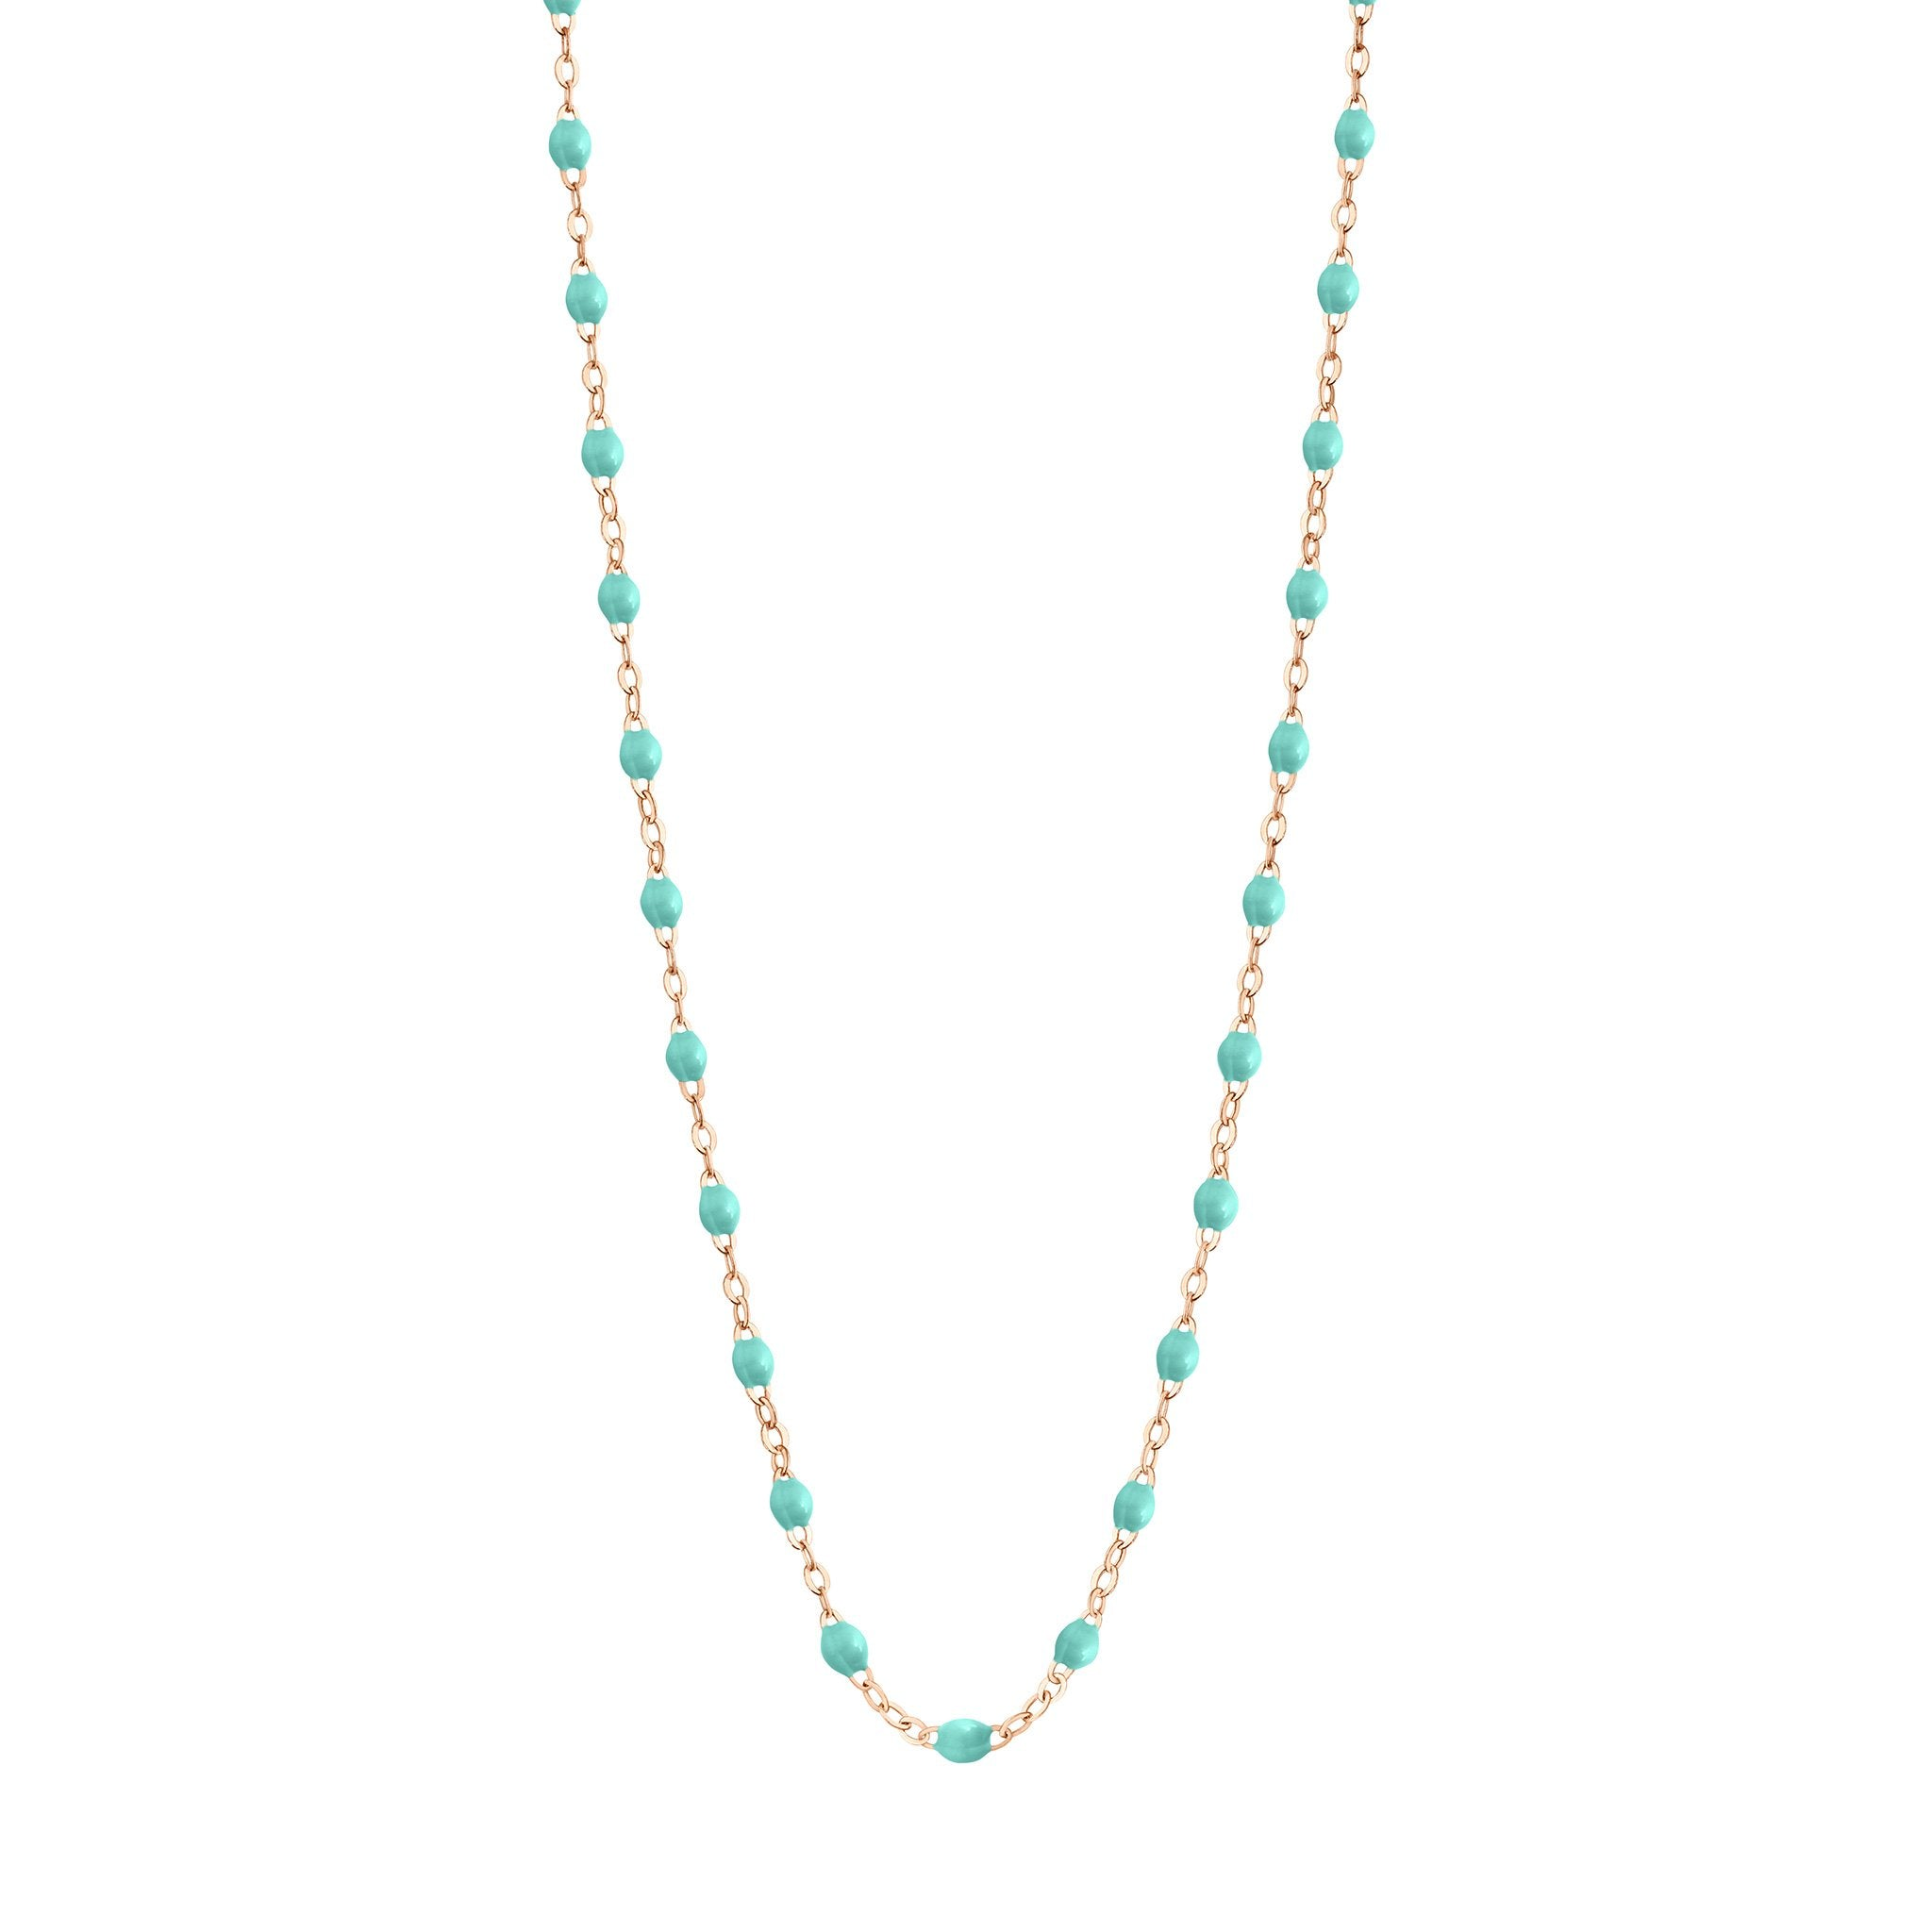 Gigi Clozeau - Classic Gigi Lagoon necklace, Rose Gold, 16.5""